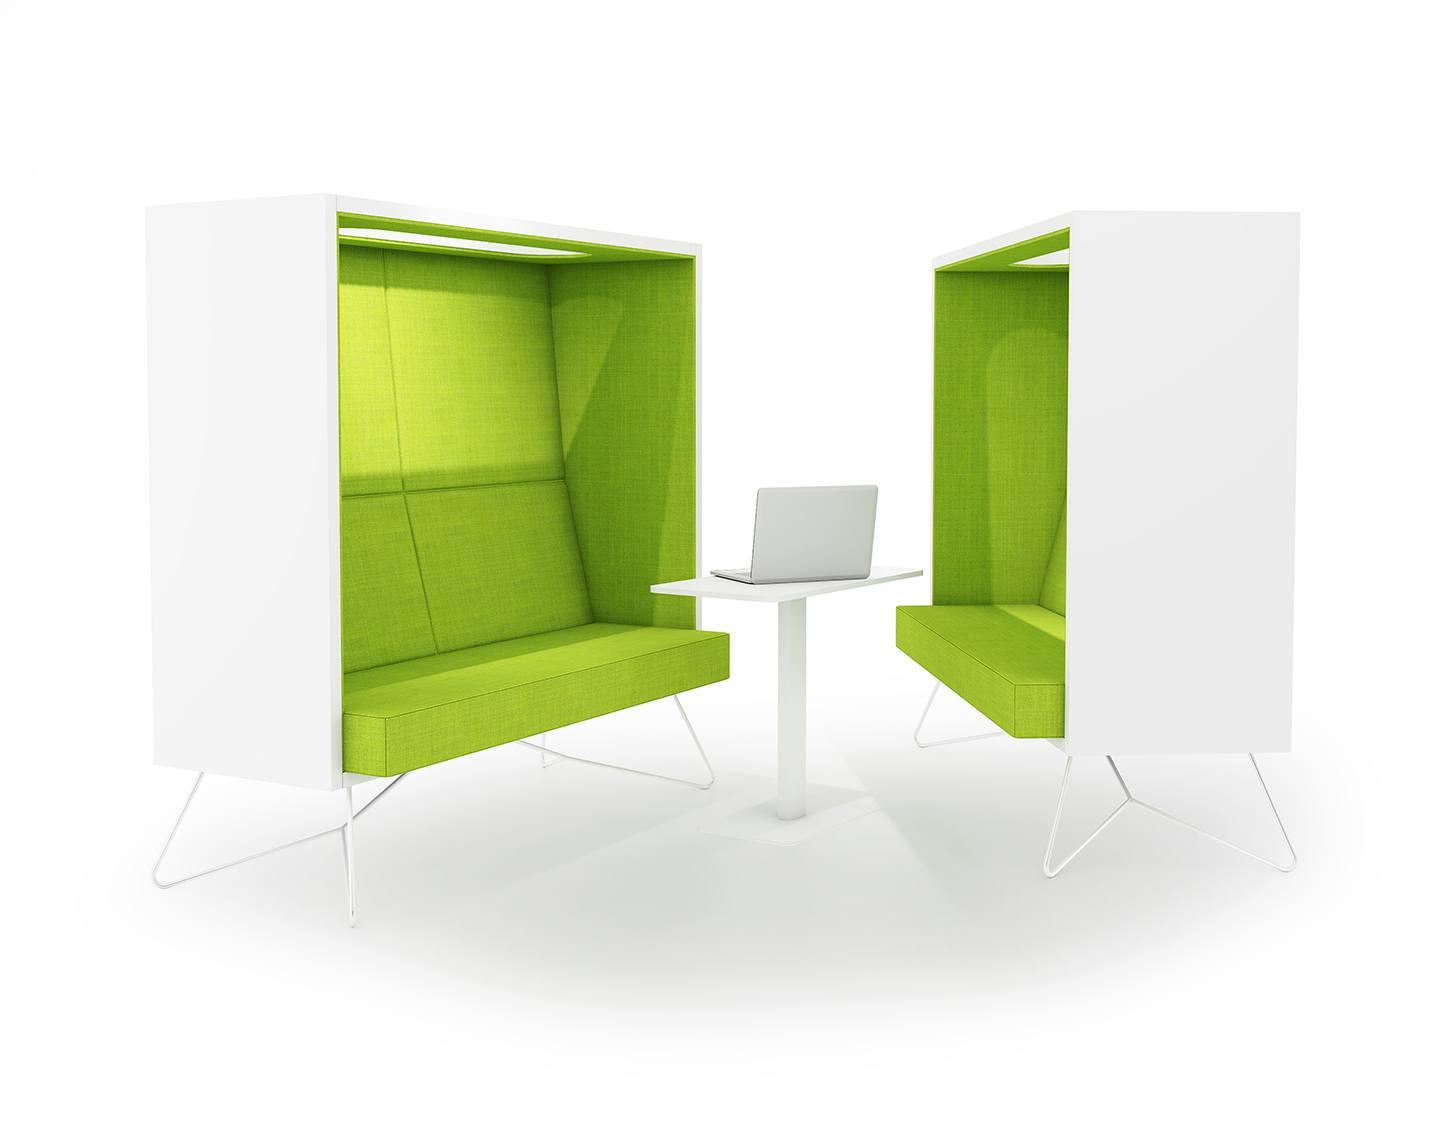 Interio Bettsofa Helsinki Cube Is A Functional Lounge Sofa For Office Into The Nordic Silence